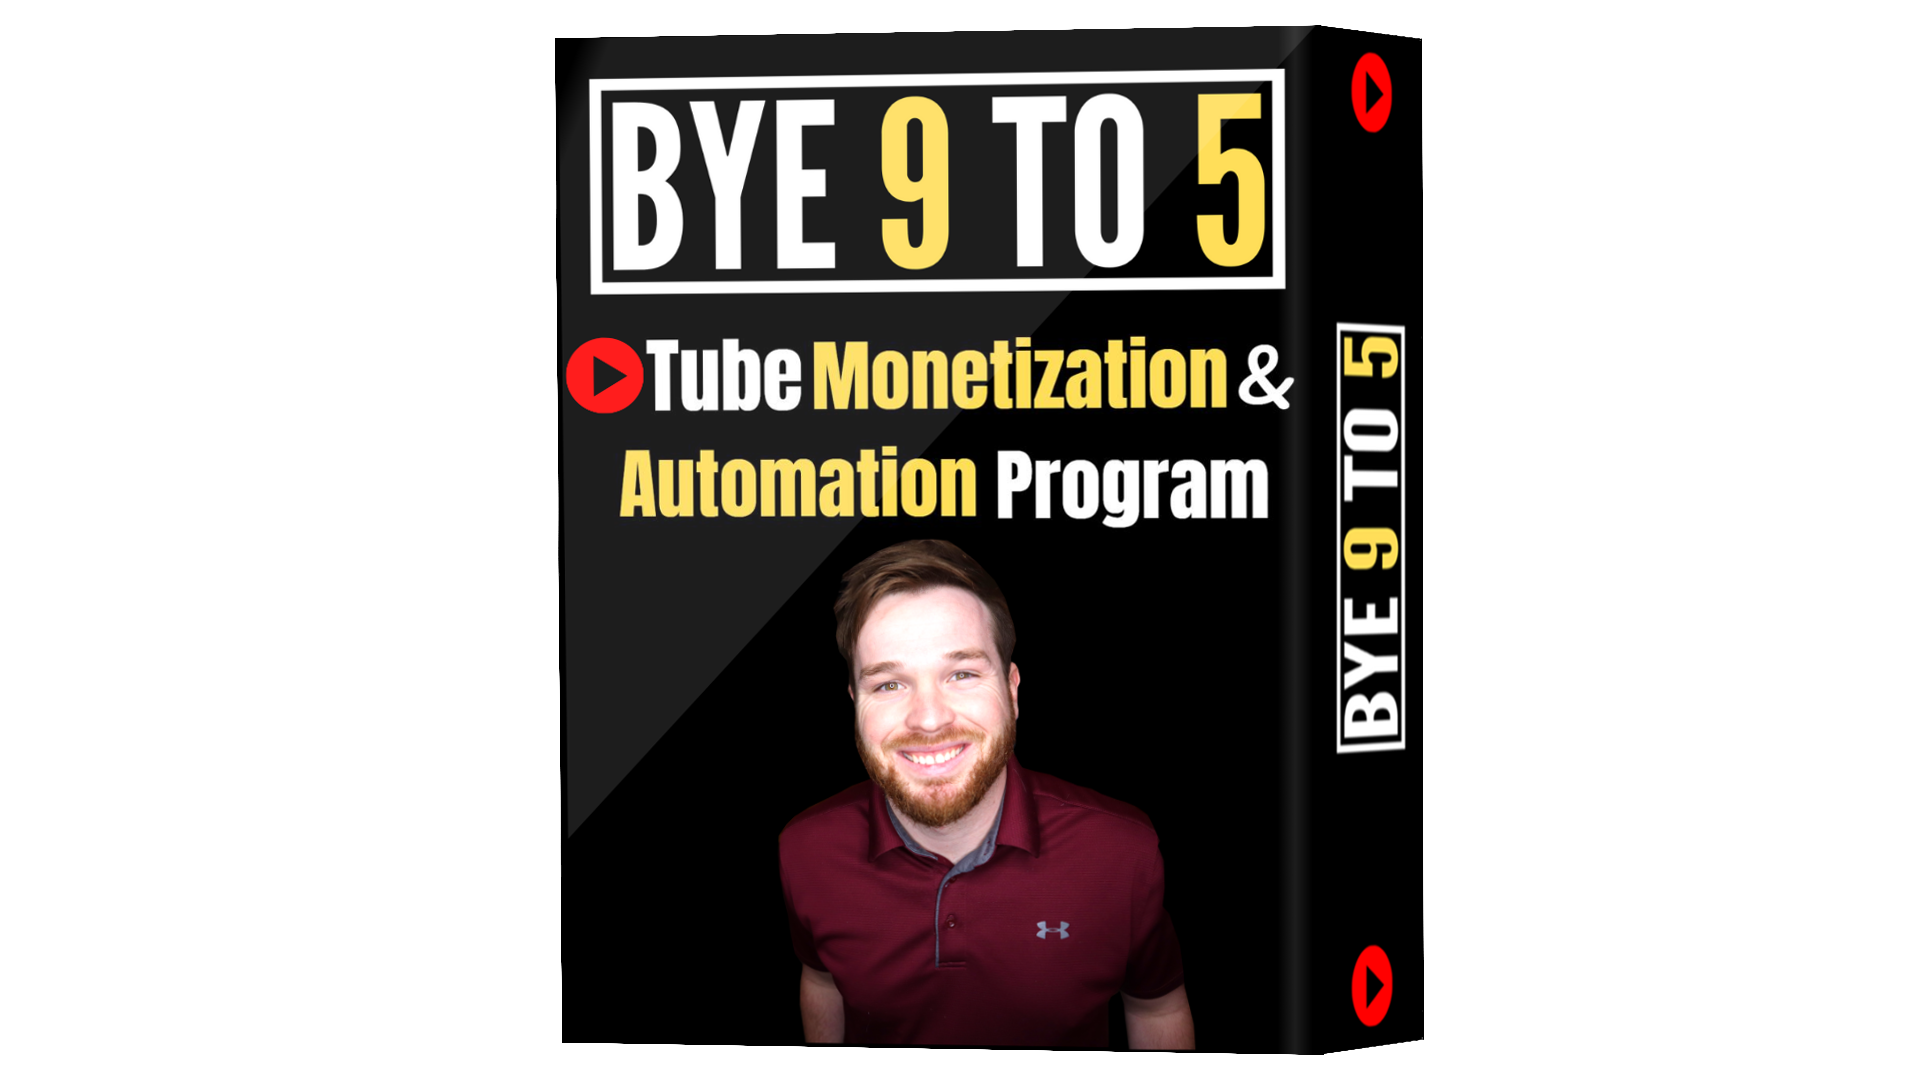 Bye 9 To 5 Course - Make Money On YouTube Without Making Videos  